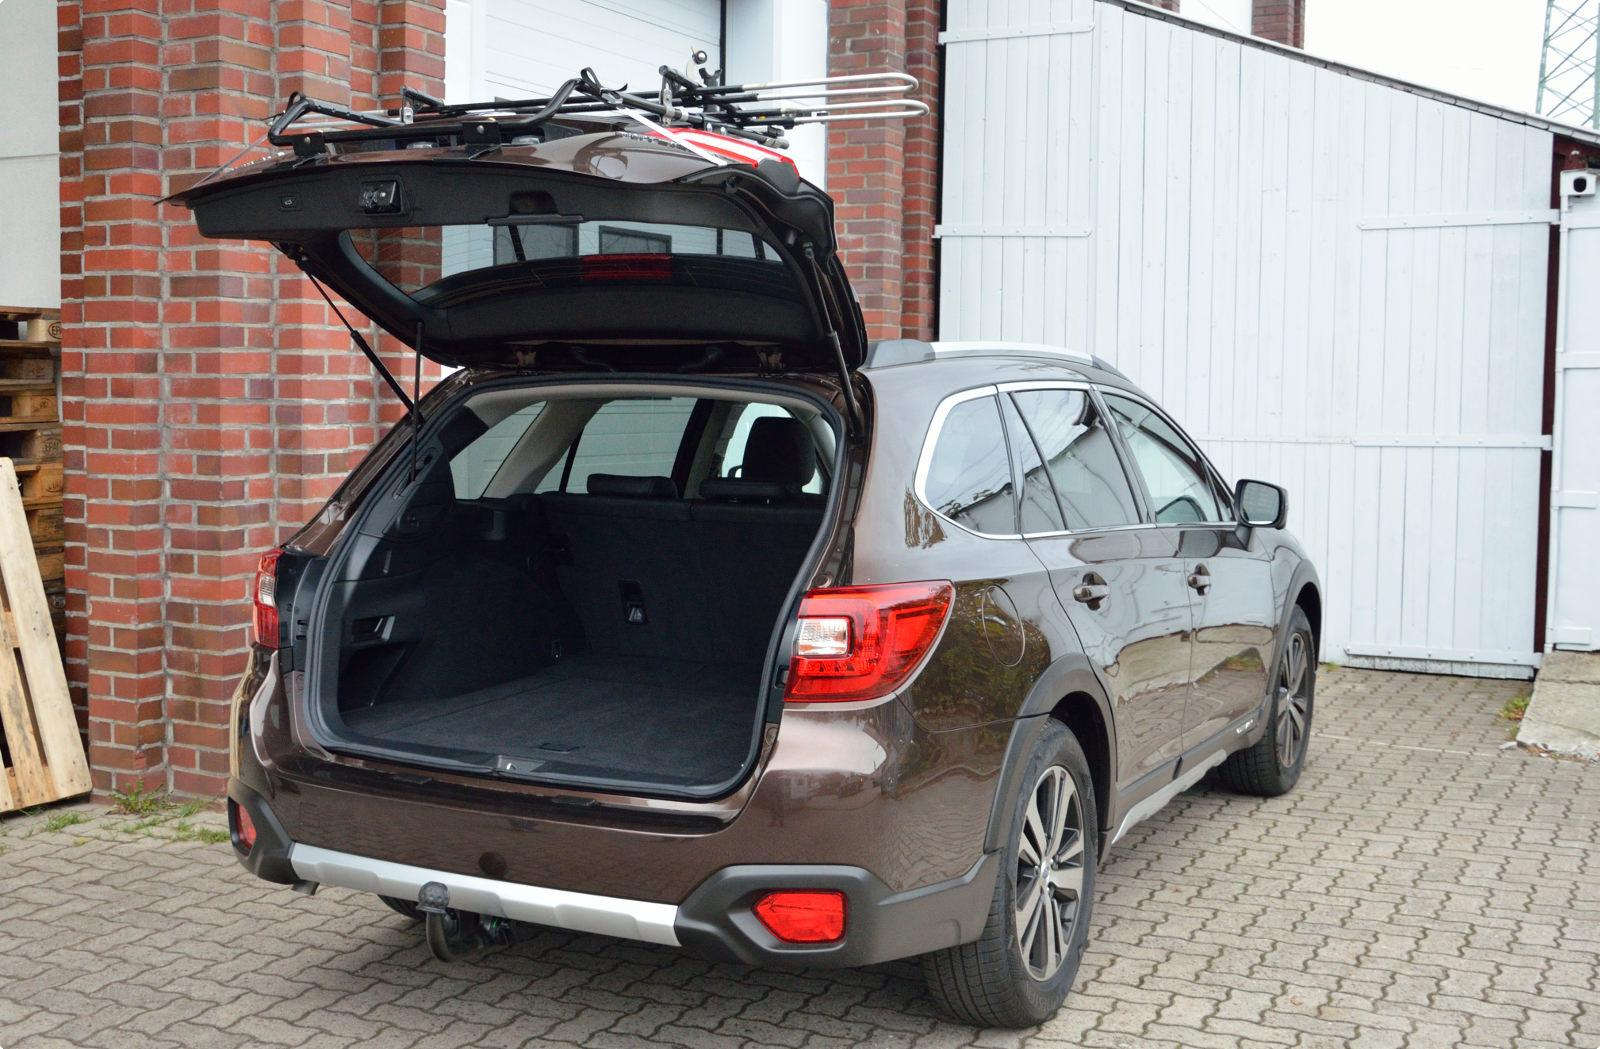 Bicycle Carrier For Subaru Outback Bs Paulchen Hecktrger System Kia Sorento Bike